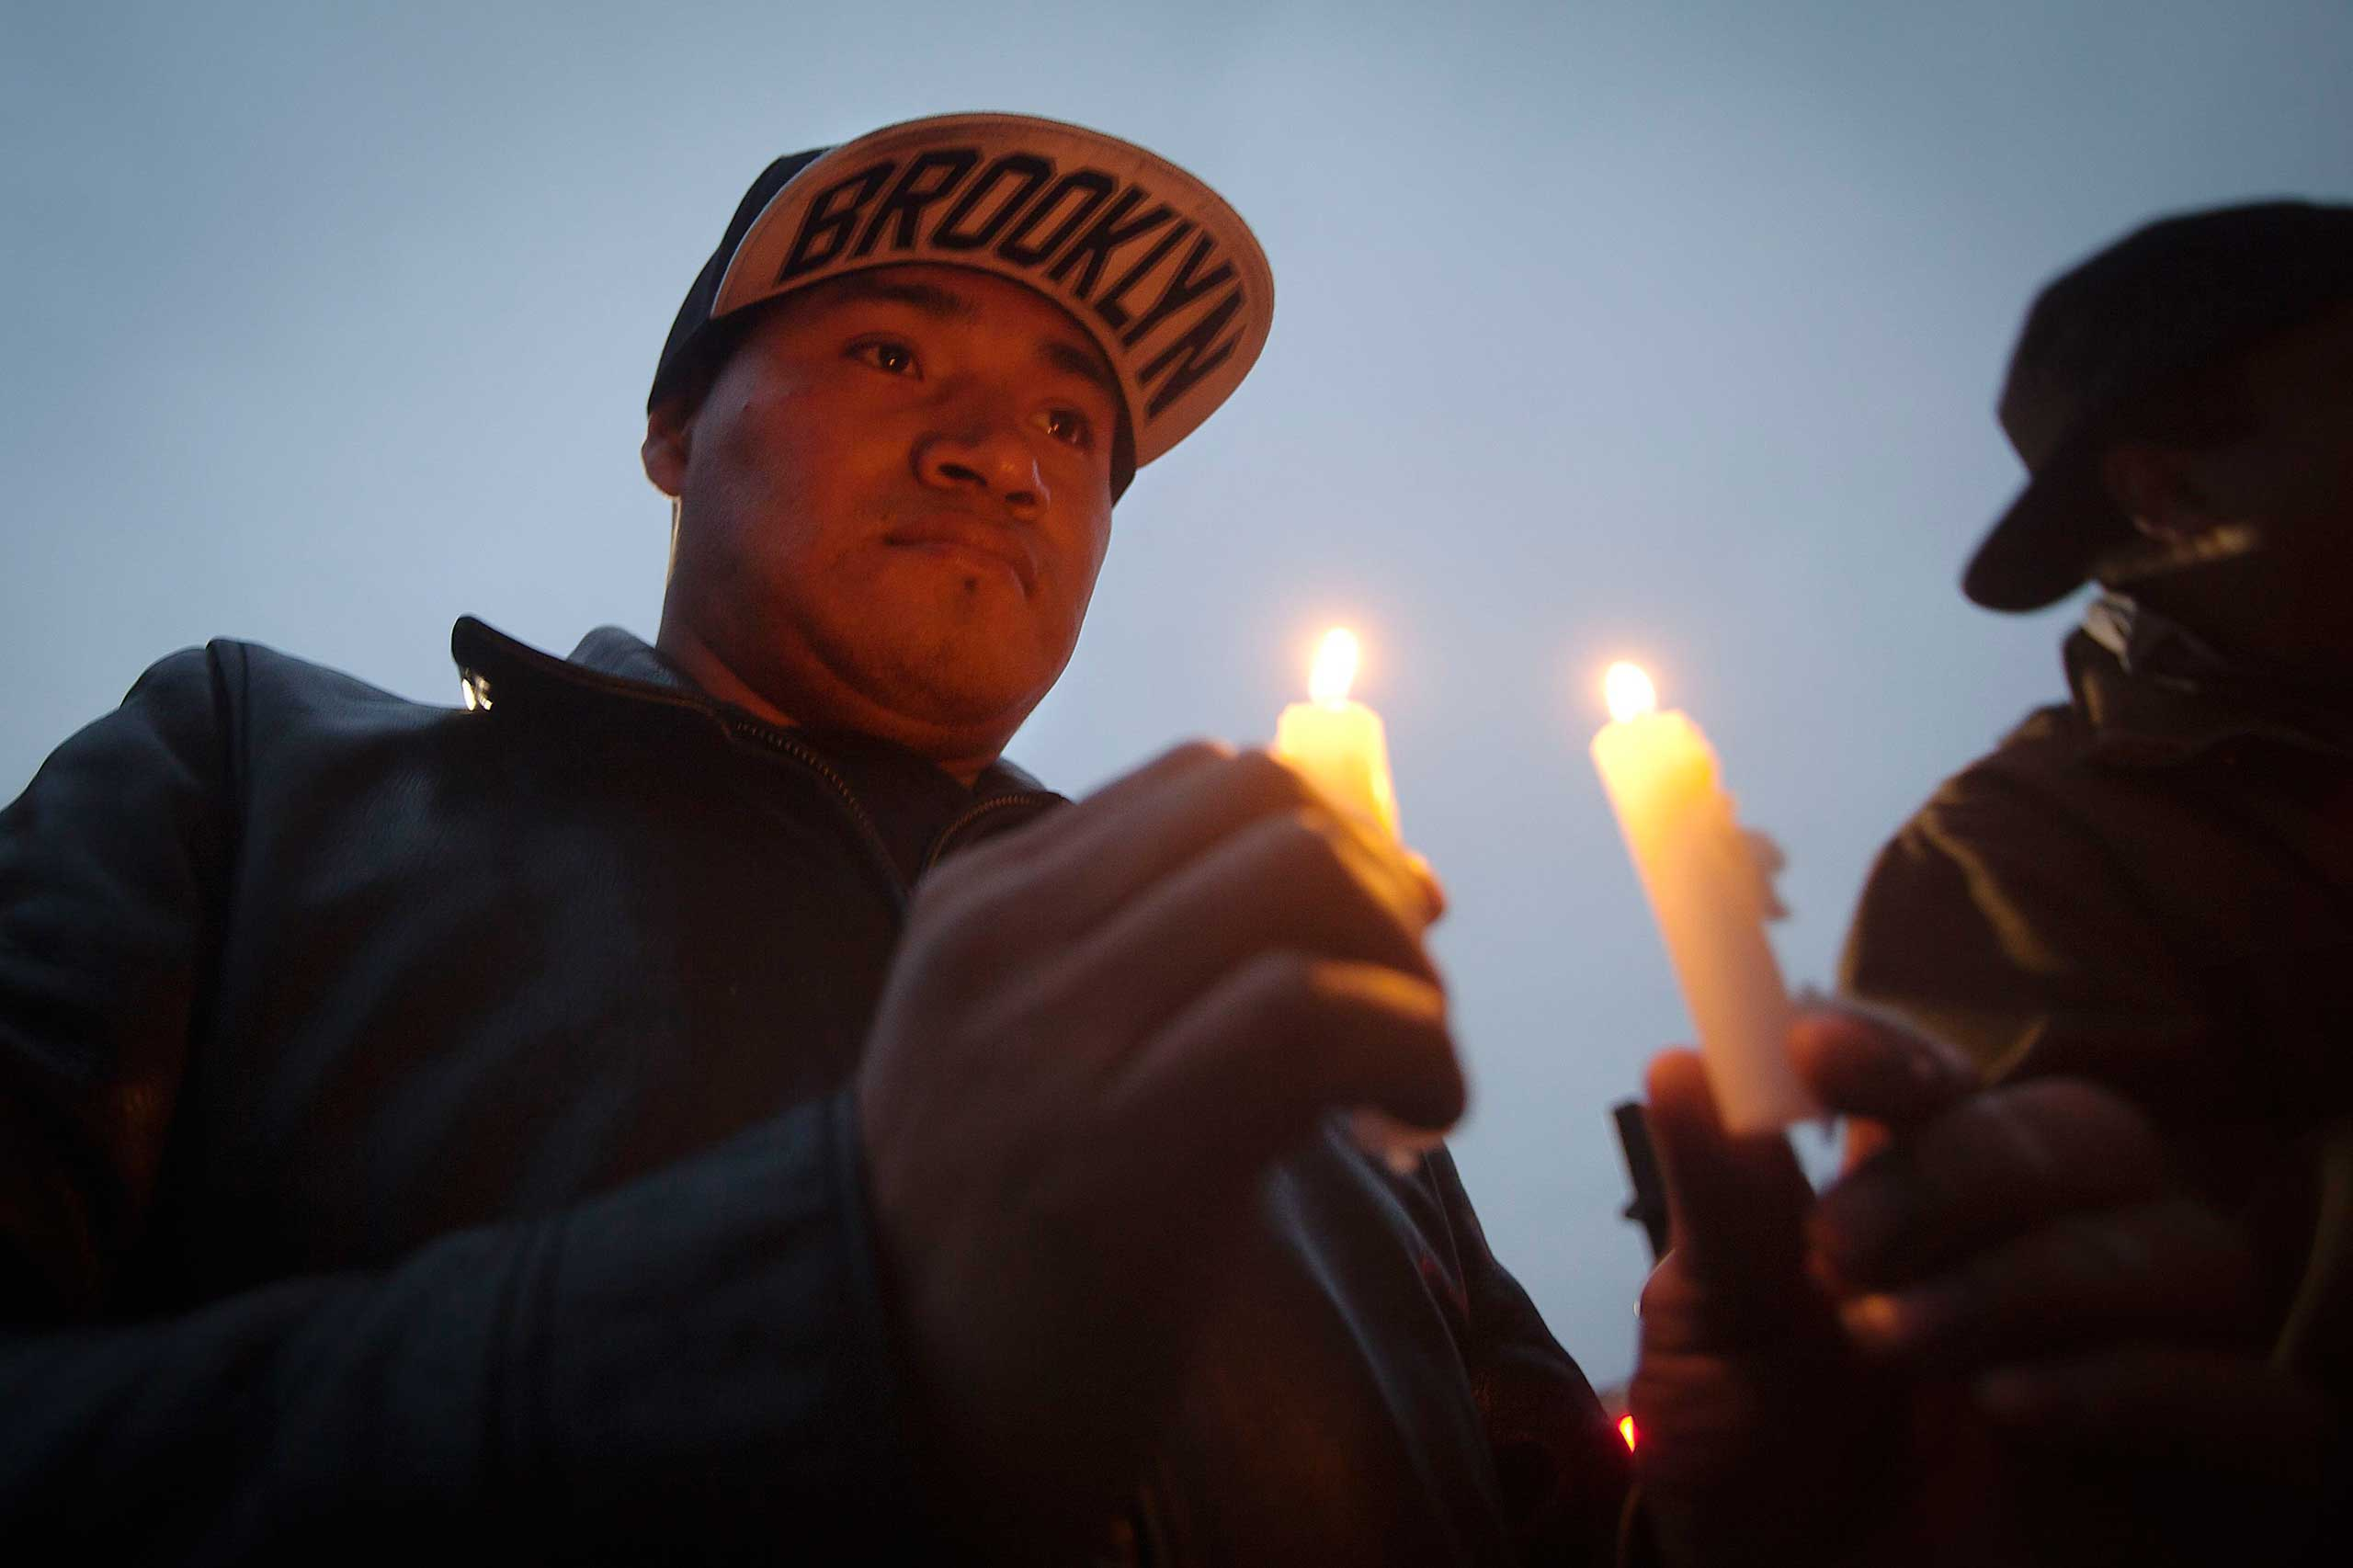 A man takes part in a prayer vigil at the site where two police officers were fatally shot in the Brooklyn borough of New York City, Dec. 21, 2014.